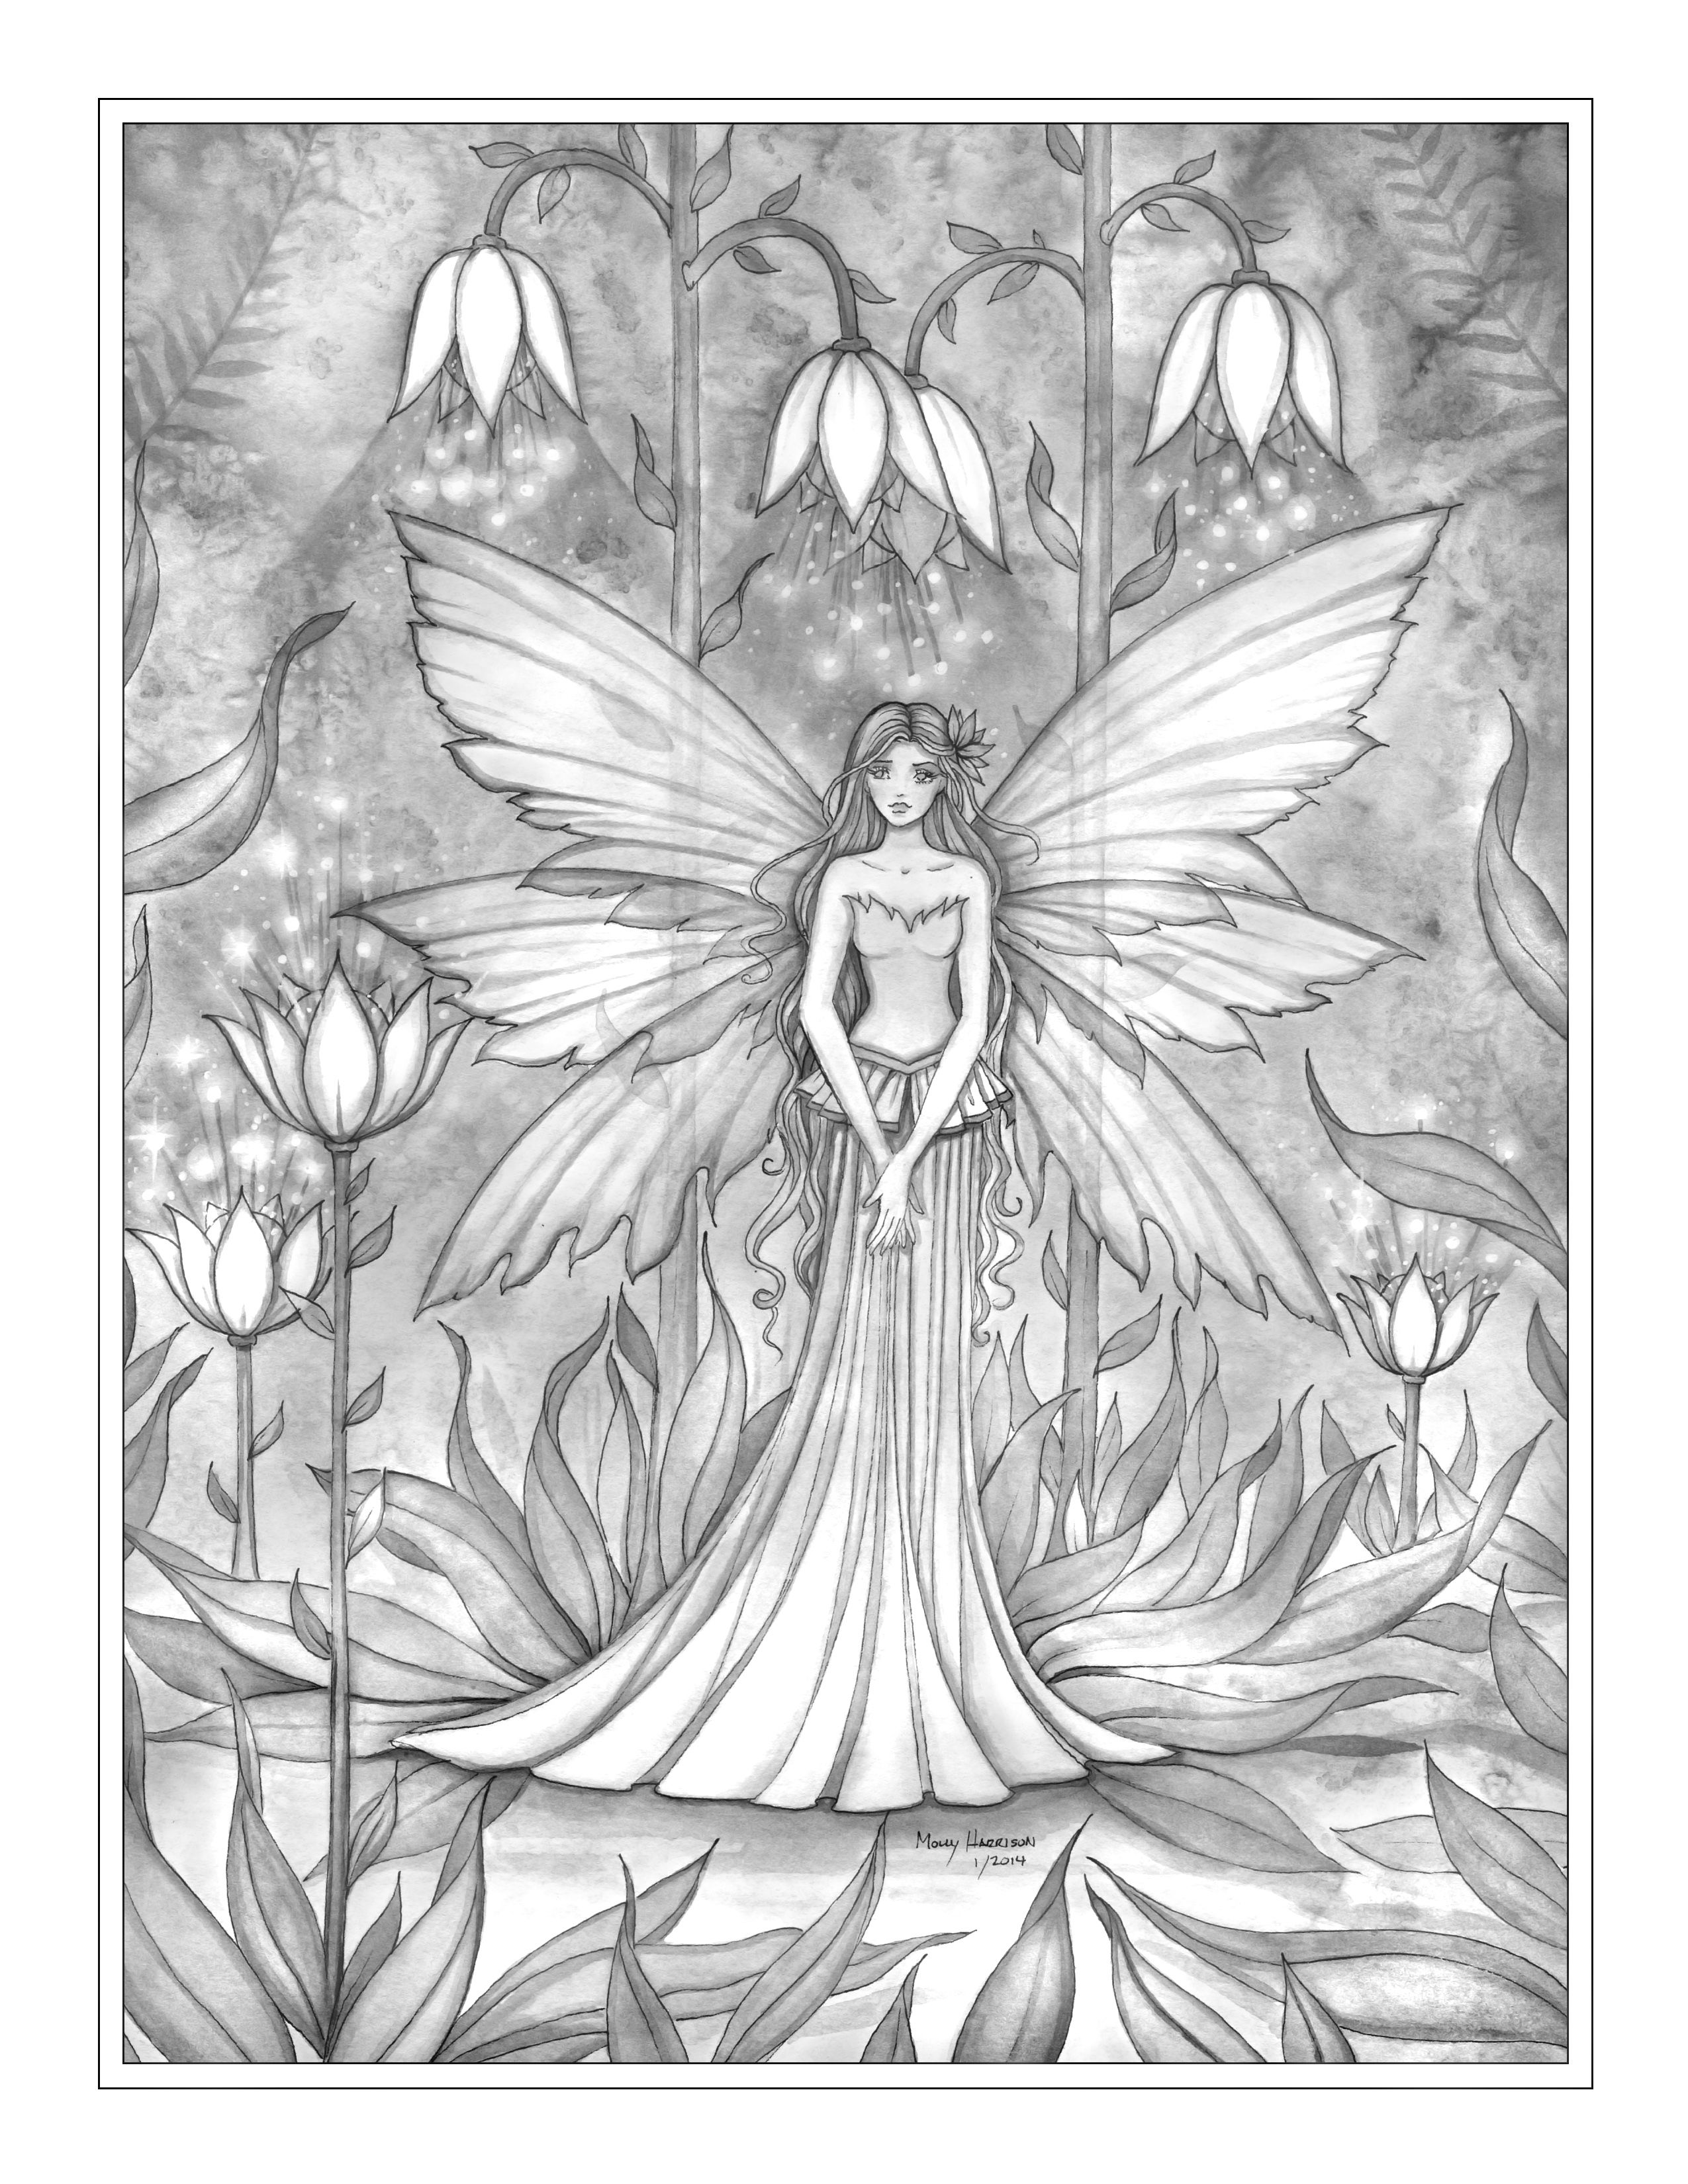 27 Jpg 2550 3300 Grayscale Coloring Fairy Coloring Fairy Art [ 3300 x 2550 Pixel ]